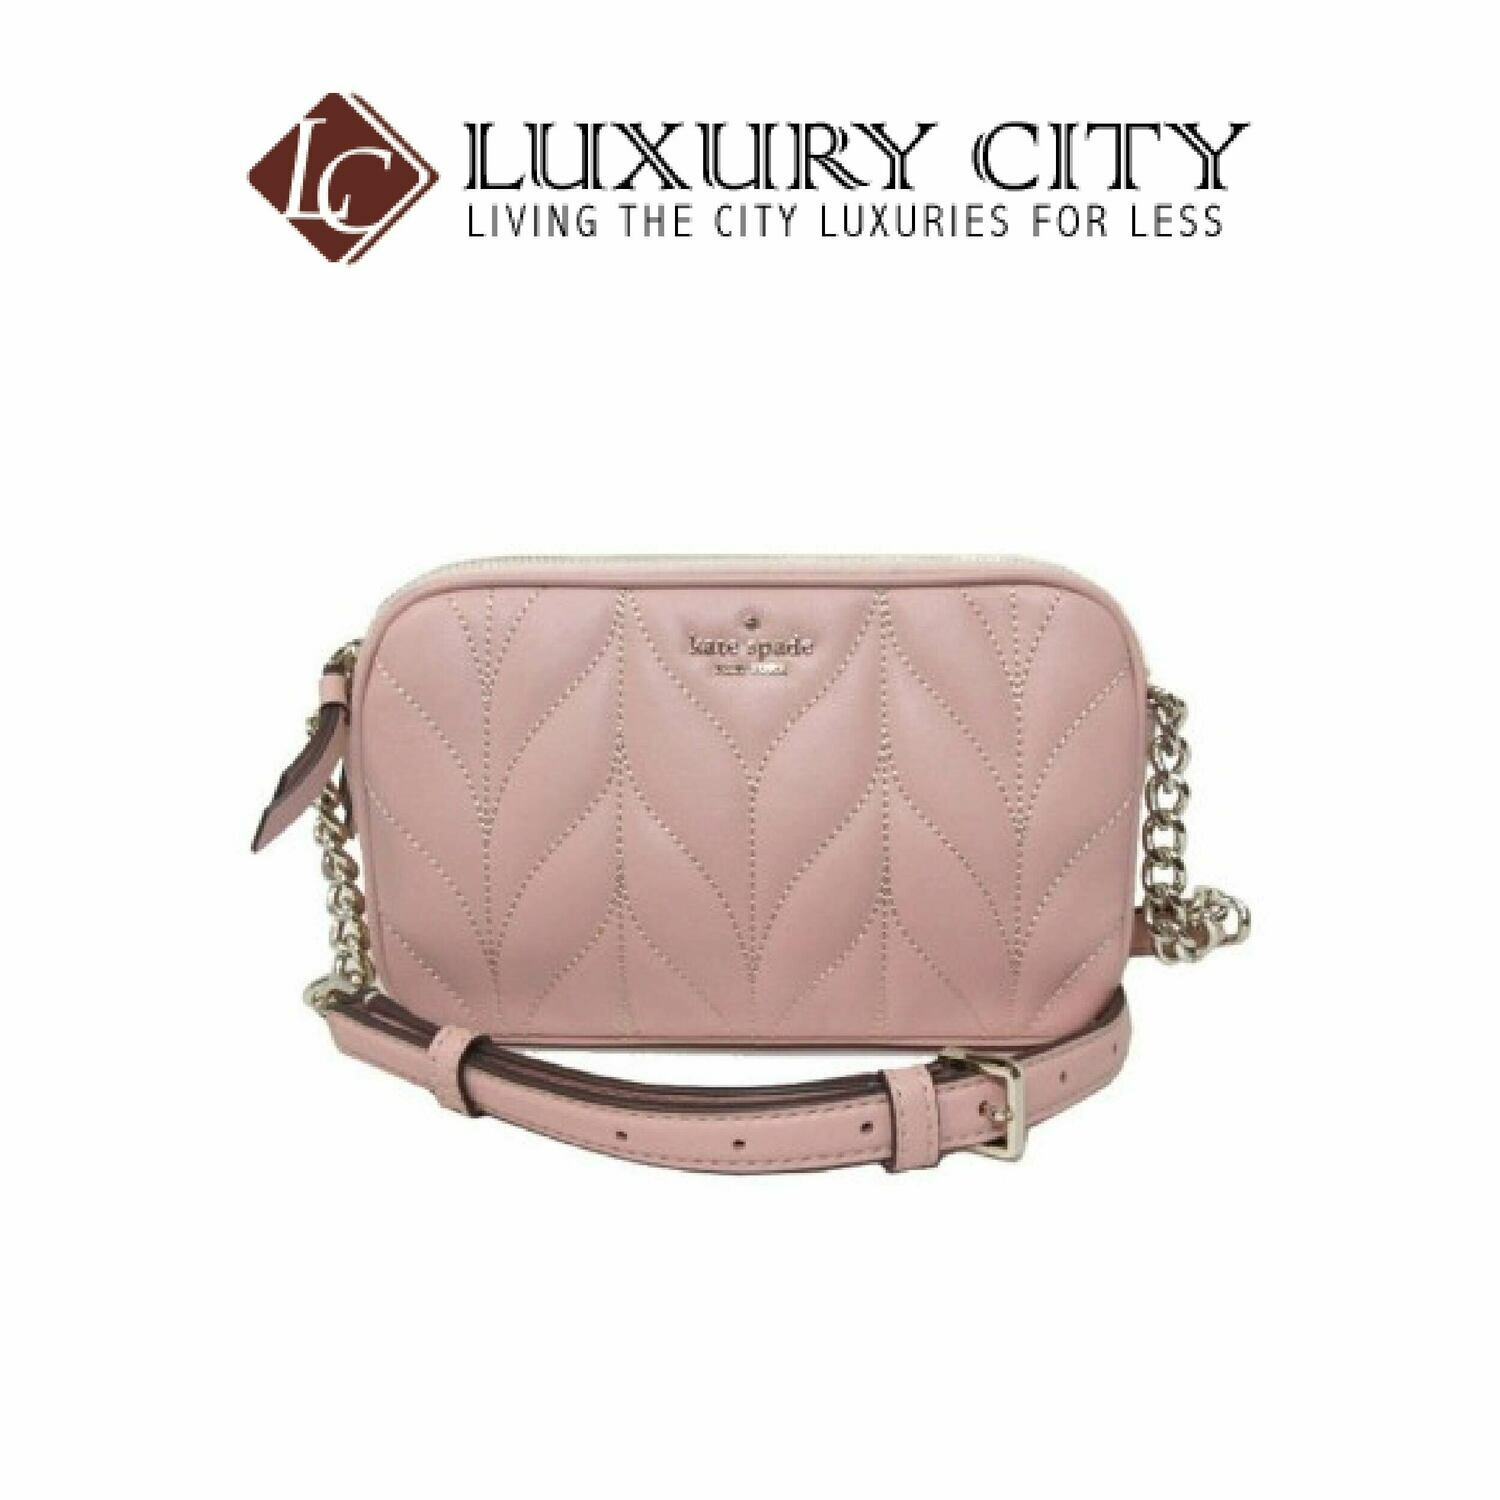 [Luxury City] Kate Spade Crossbody Bag Kendall Briar Lane Quilted Light Pink Katespade-WLRU5492